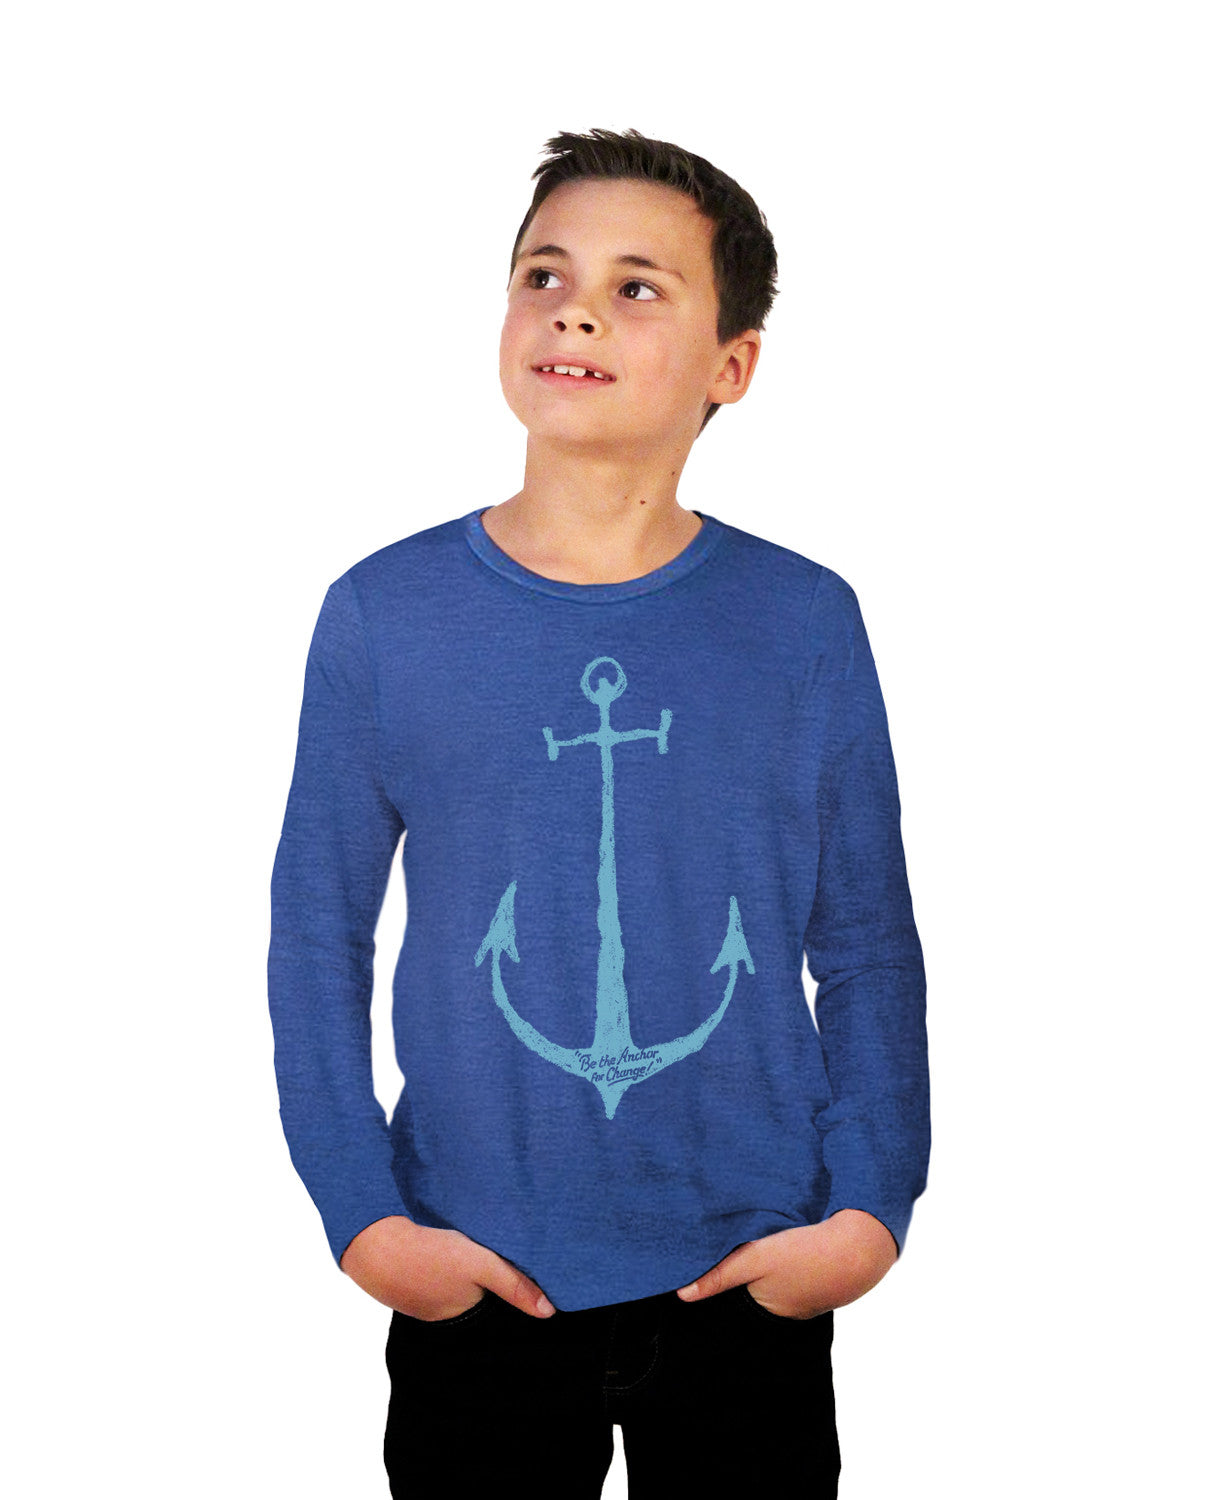 Anchor For Change Youth Jersey Long Sleeve Tee